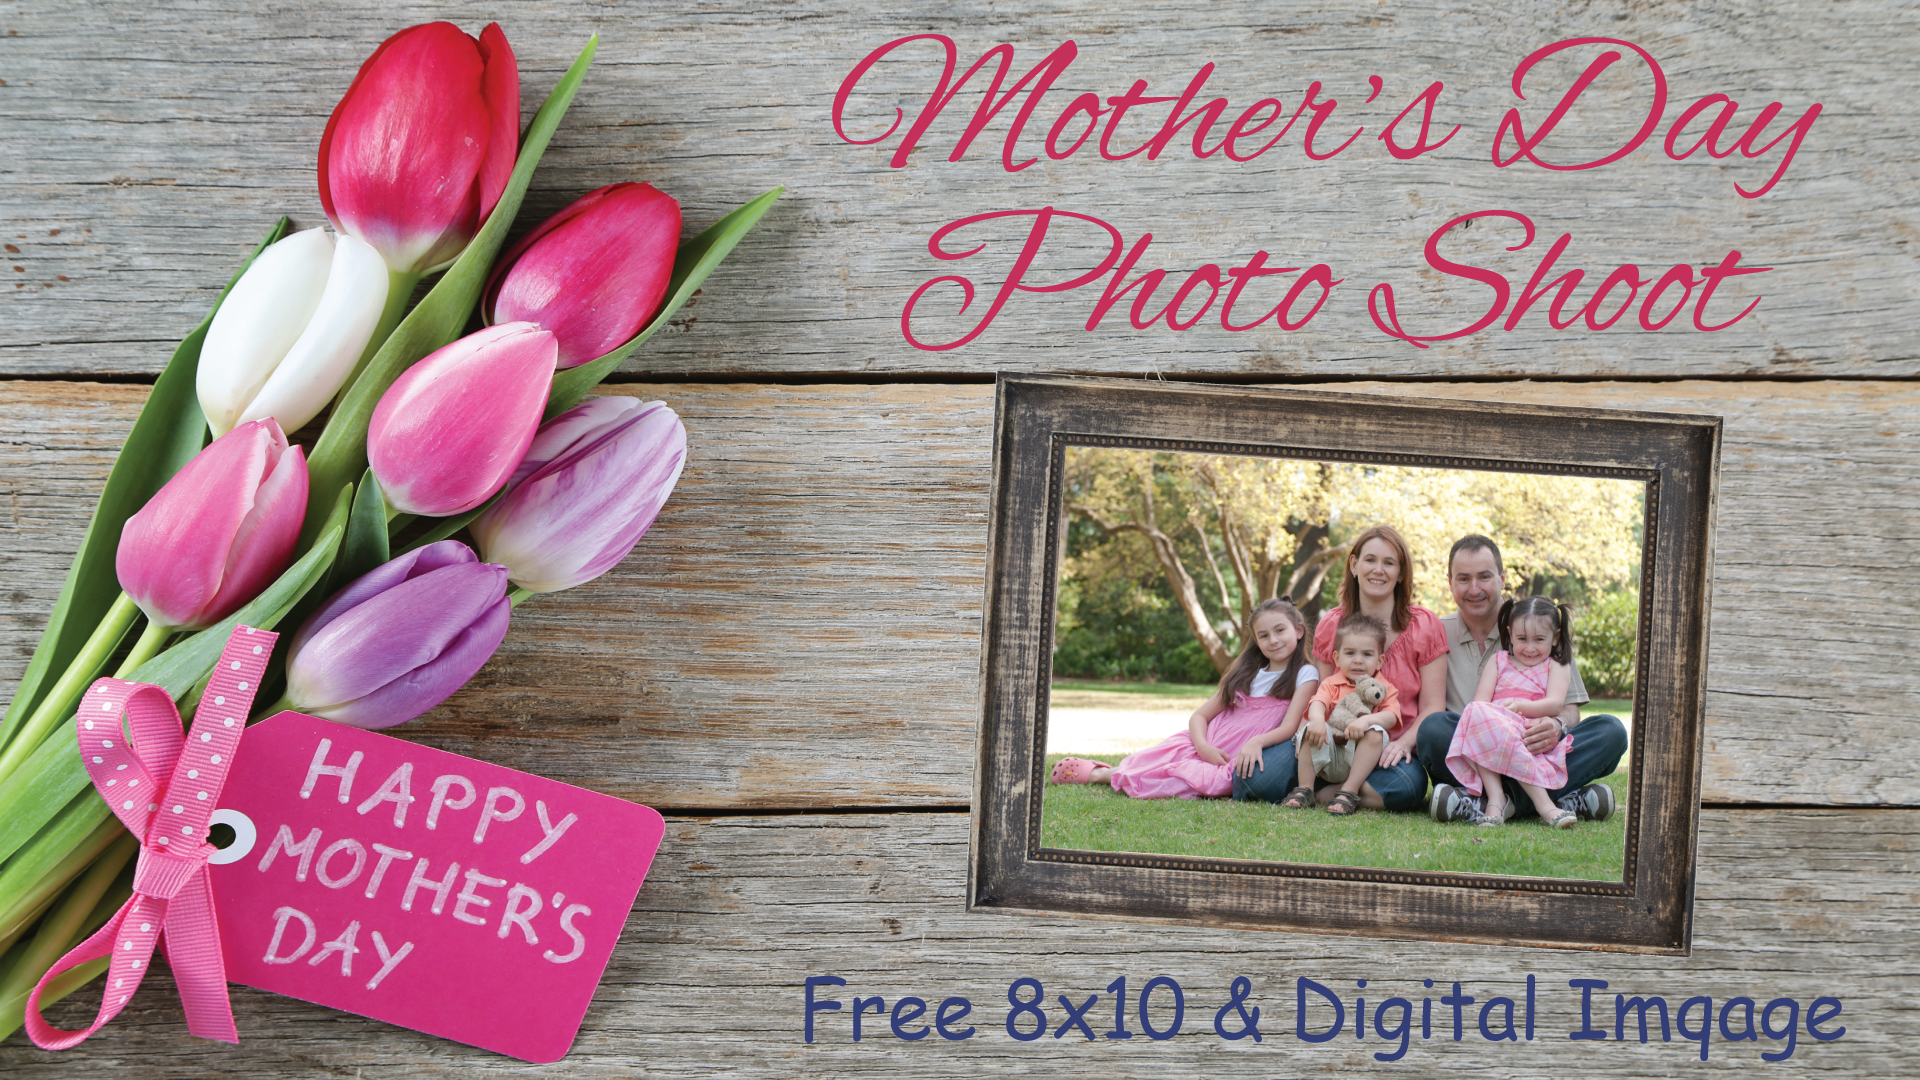 Mother's Day Photo Shoot